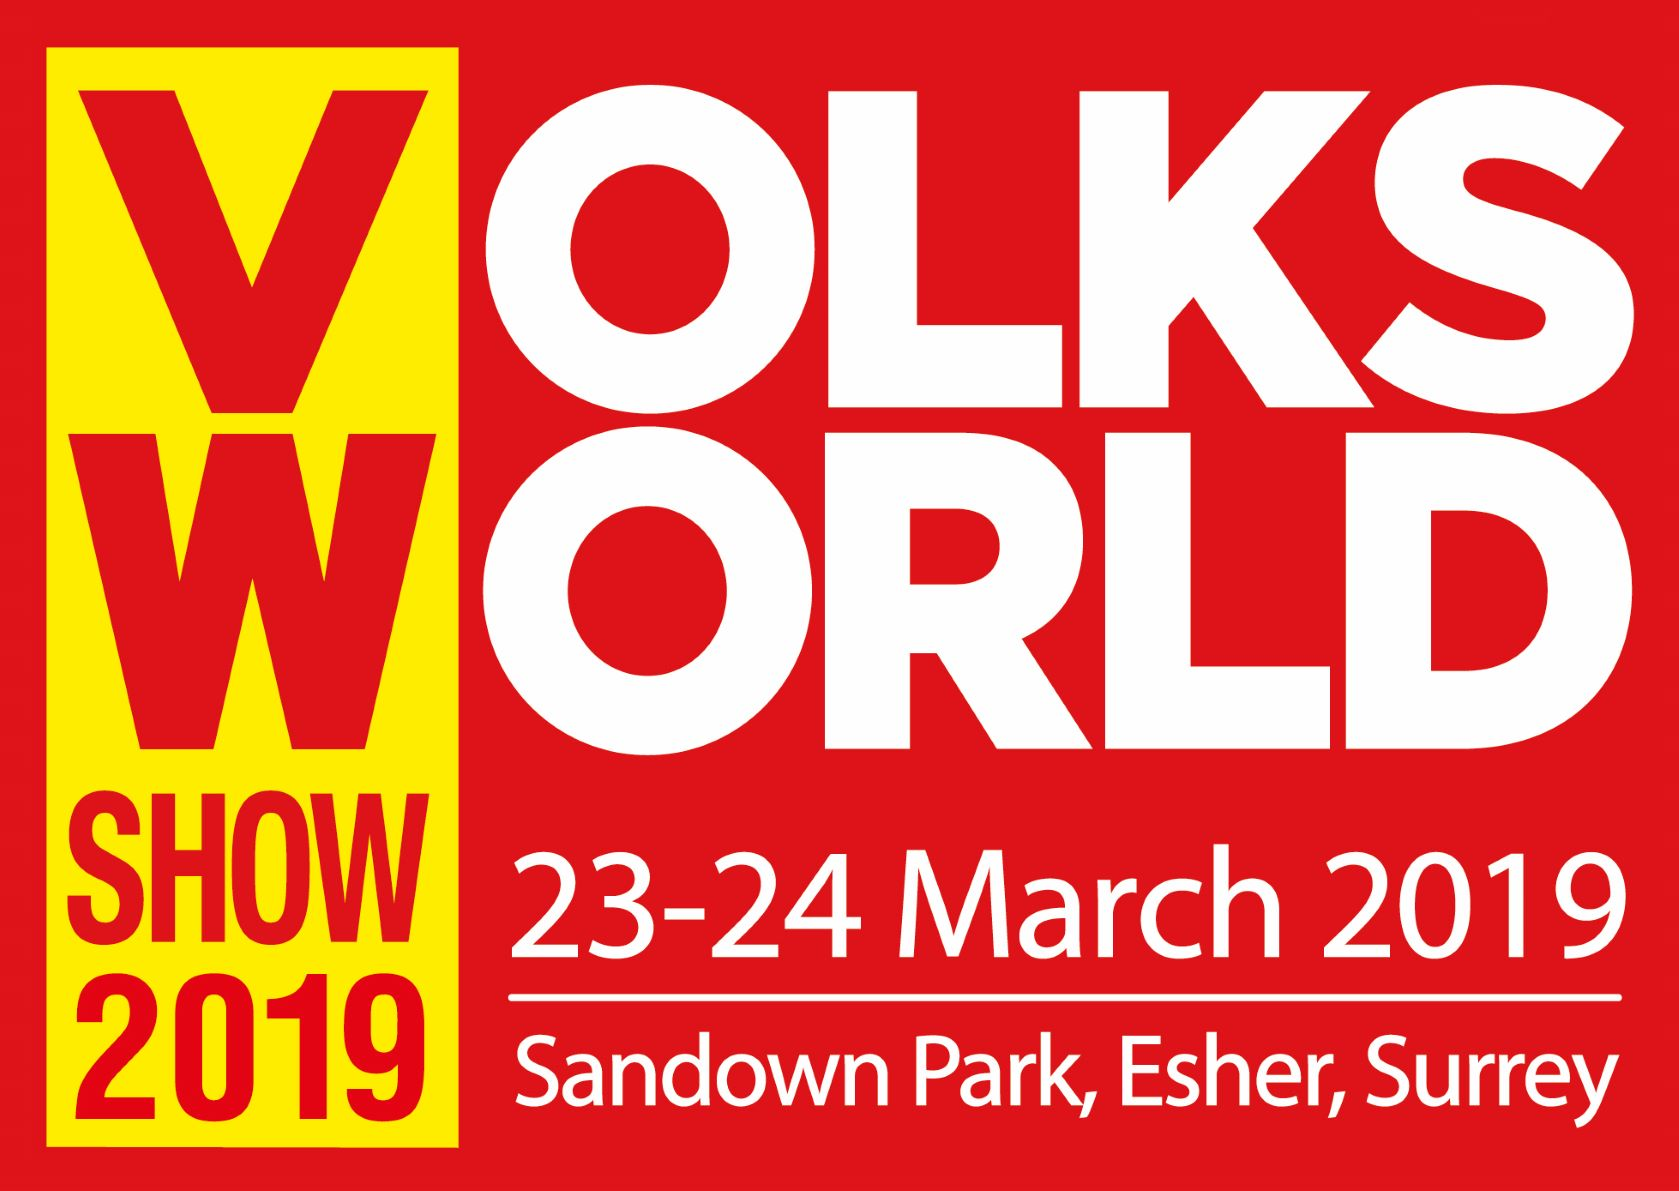 Volksworld 2019 - Volksoruce VW Event 2019 listing